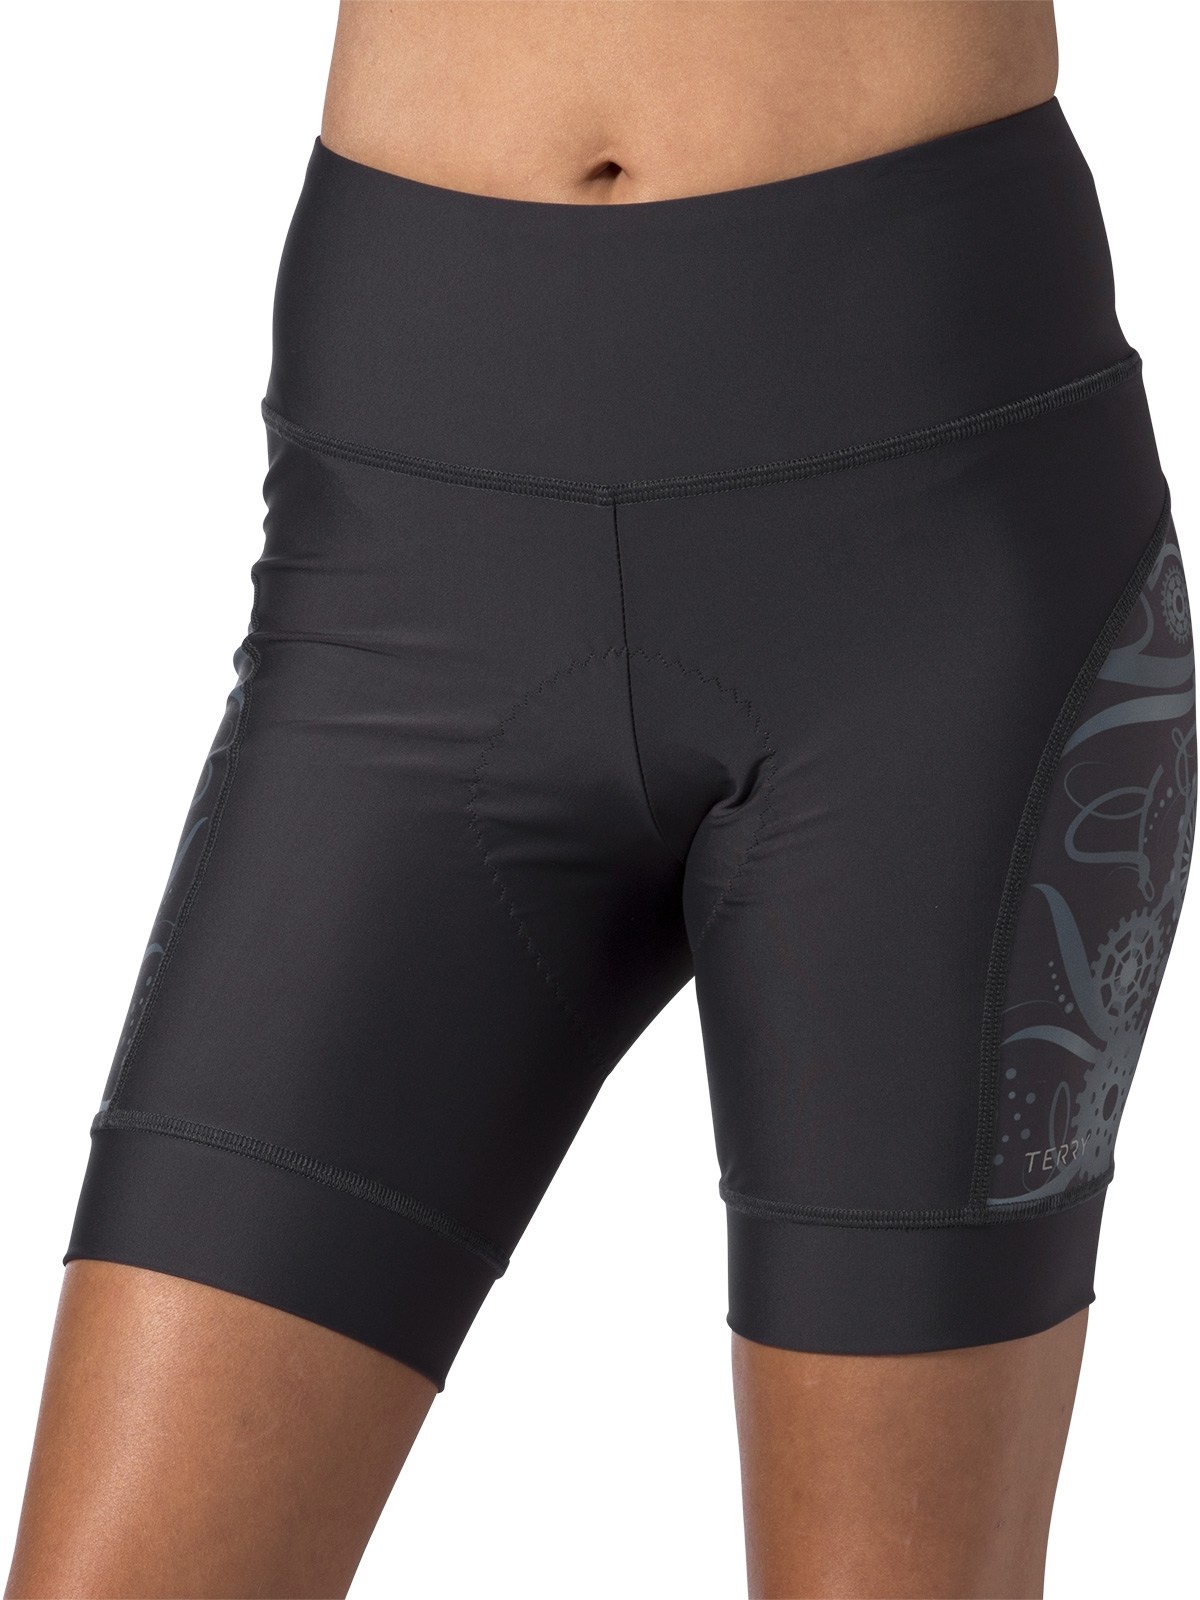 Terry Soleil Bike Shorts - Women's